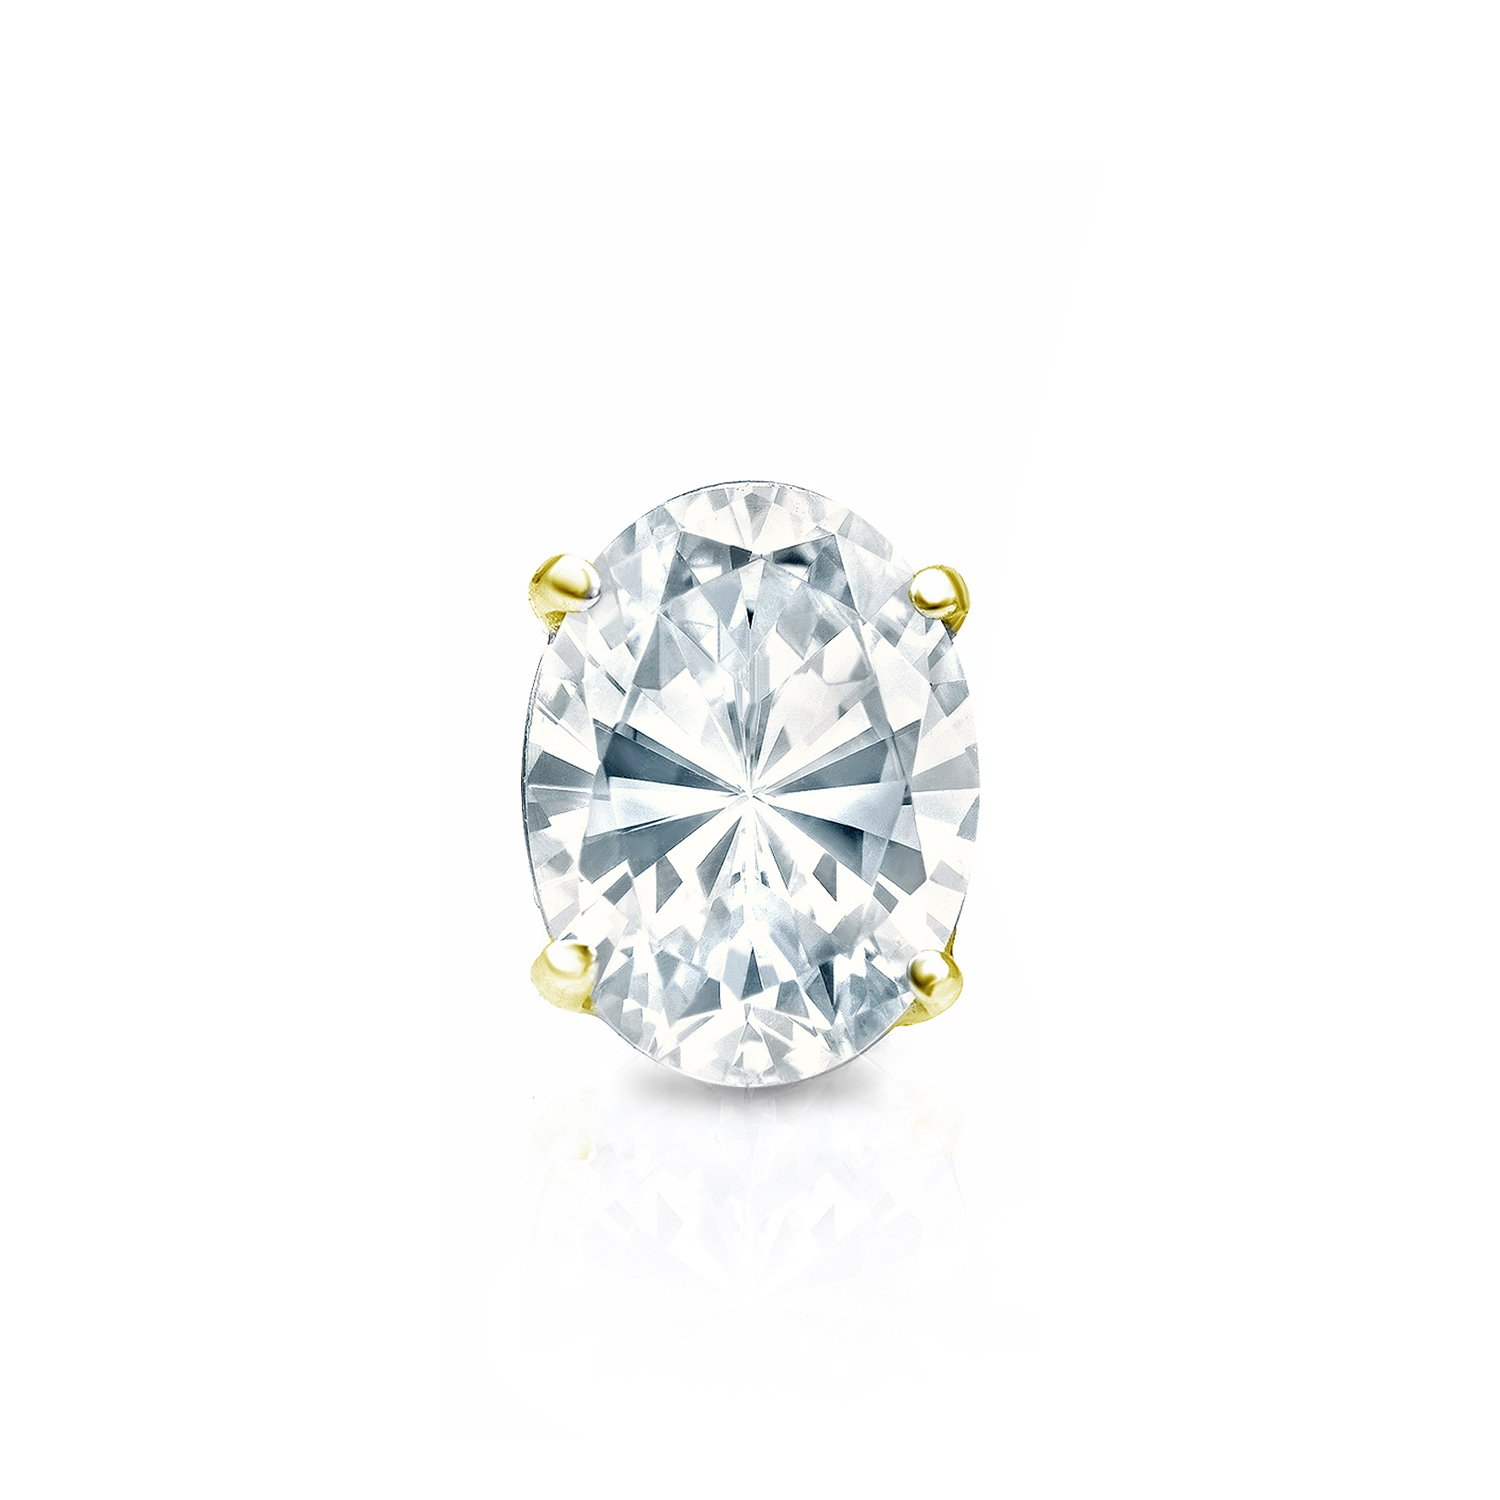 14k Yellow Gold Oval Diamond Simulant CZ SINGLE STUD Earring 4-Prong (1/2ct,Excellent Quality)